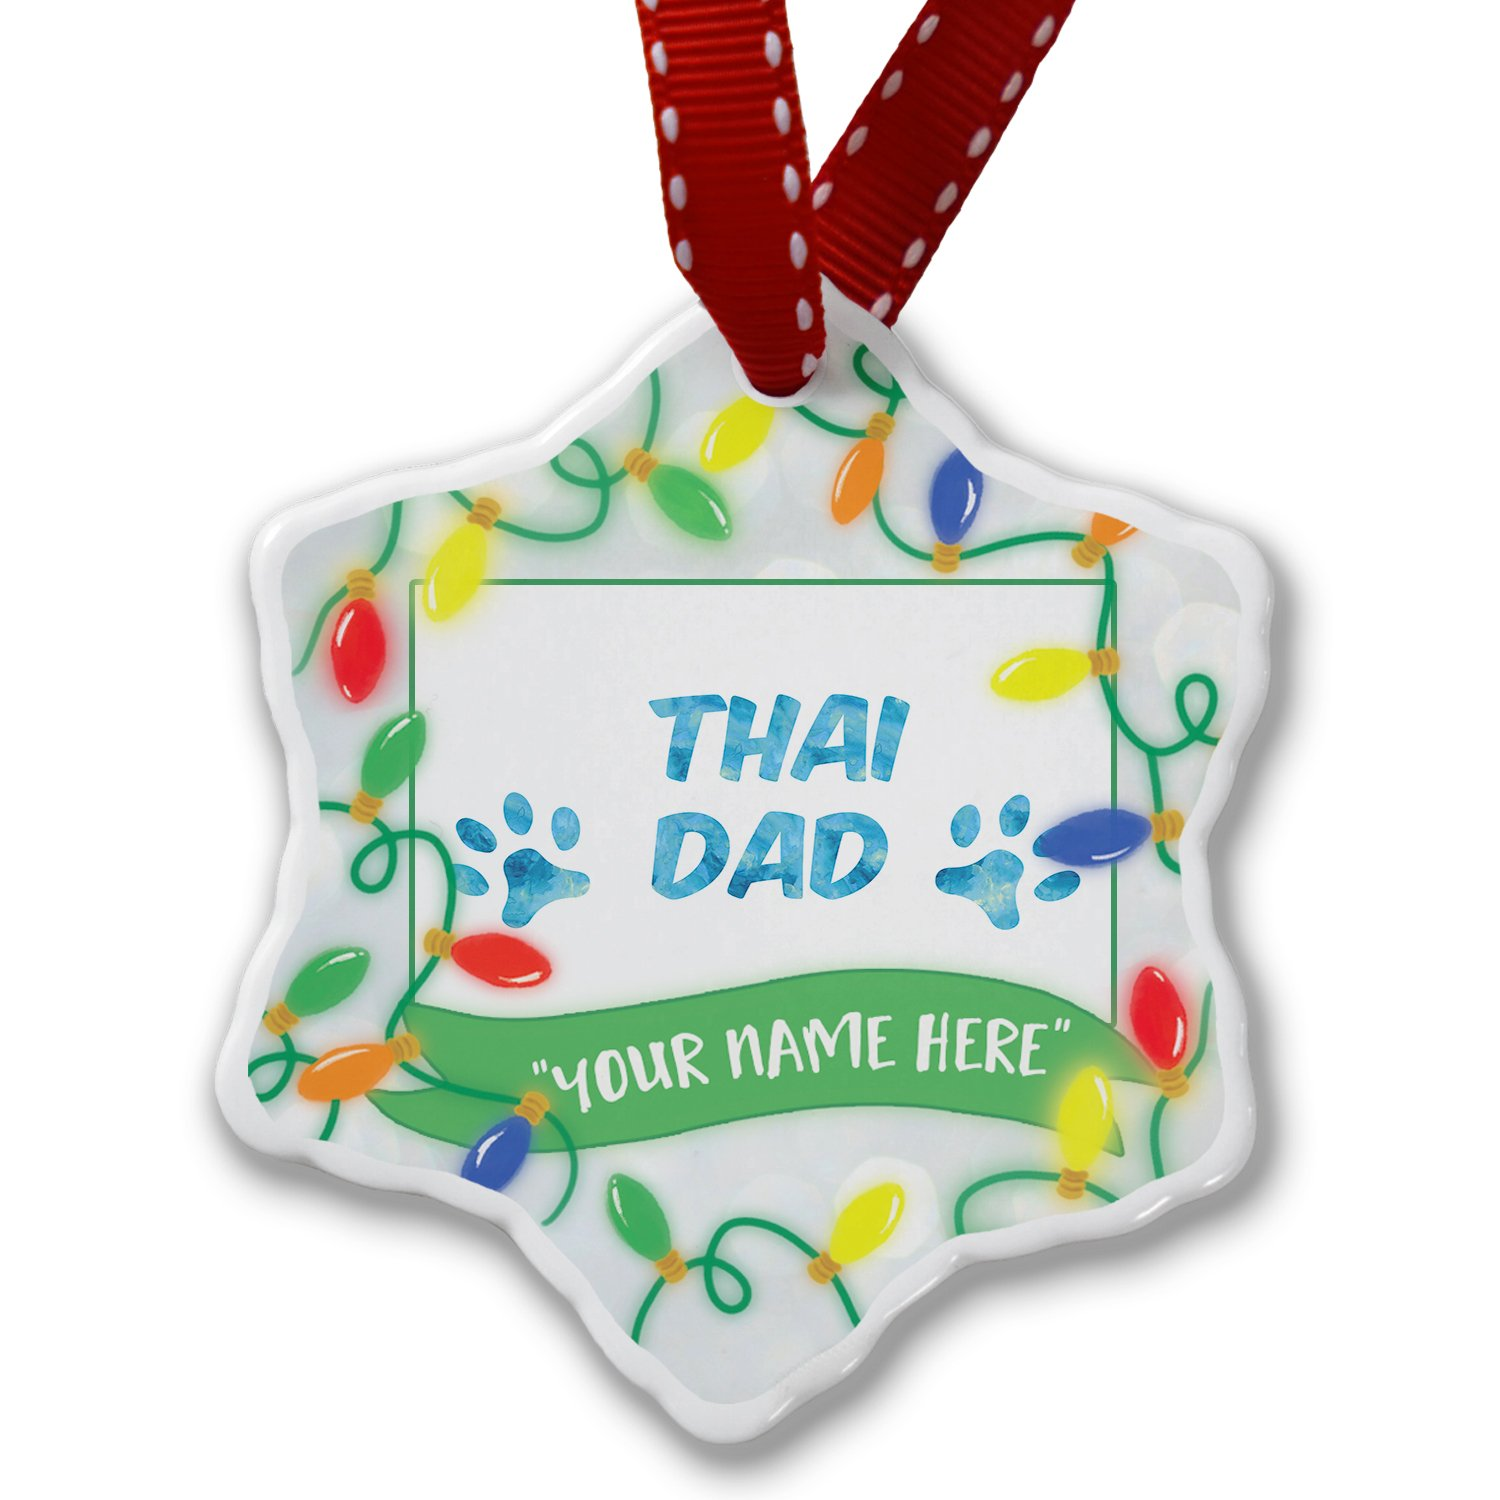 Personalized Name Christmas Ornament, Dog & Cat Dad Thai NEONBLOND